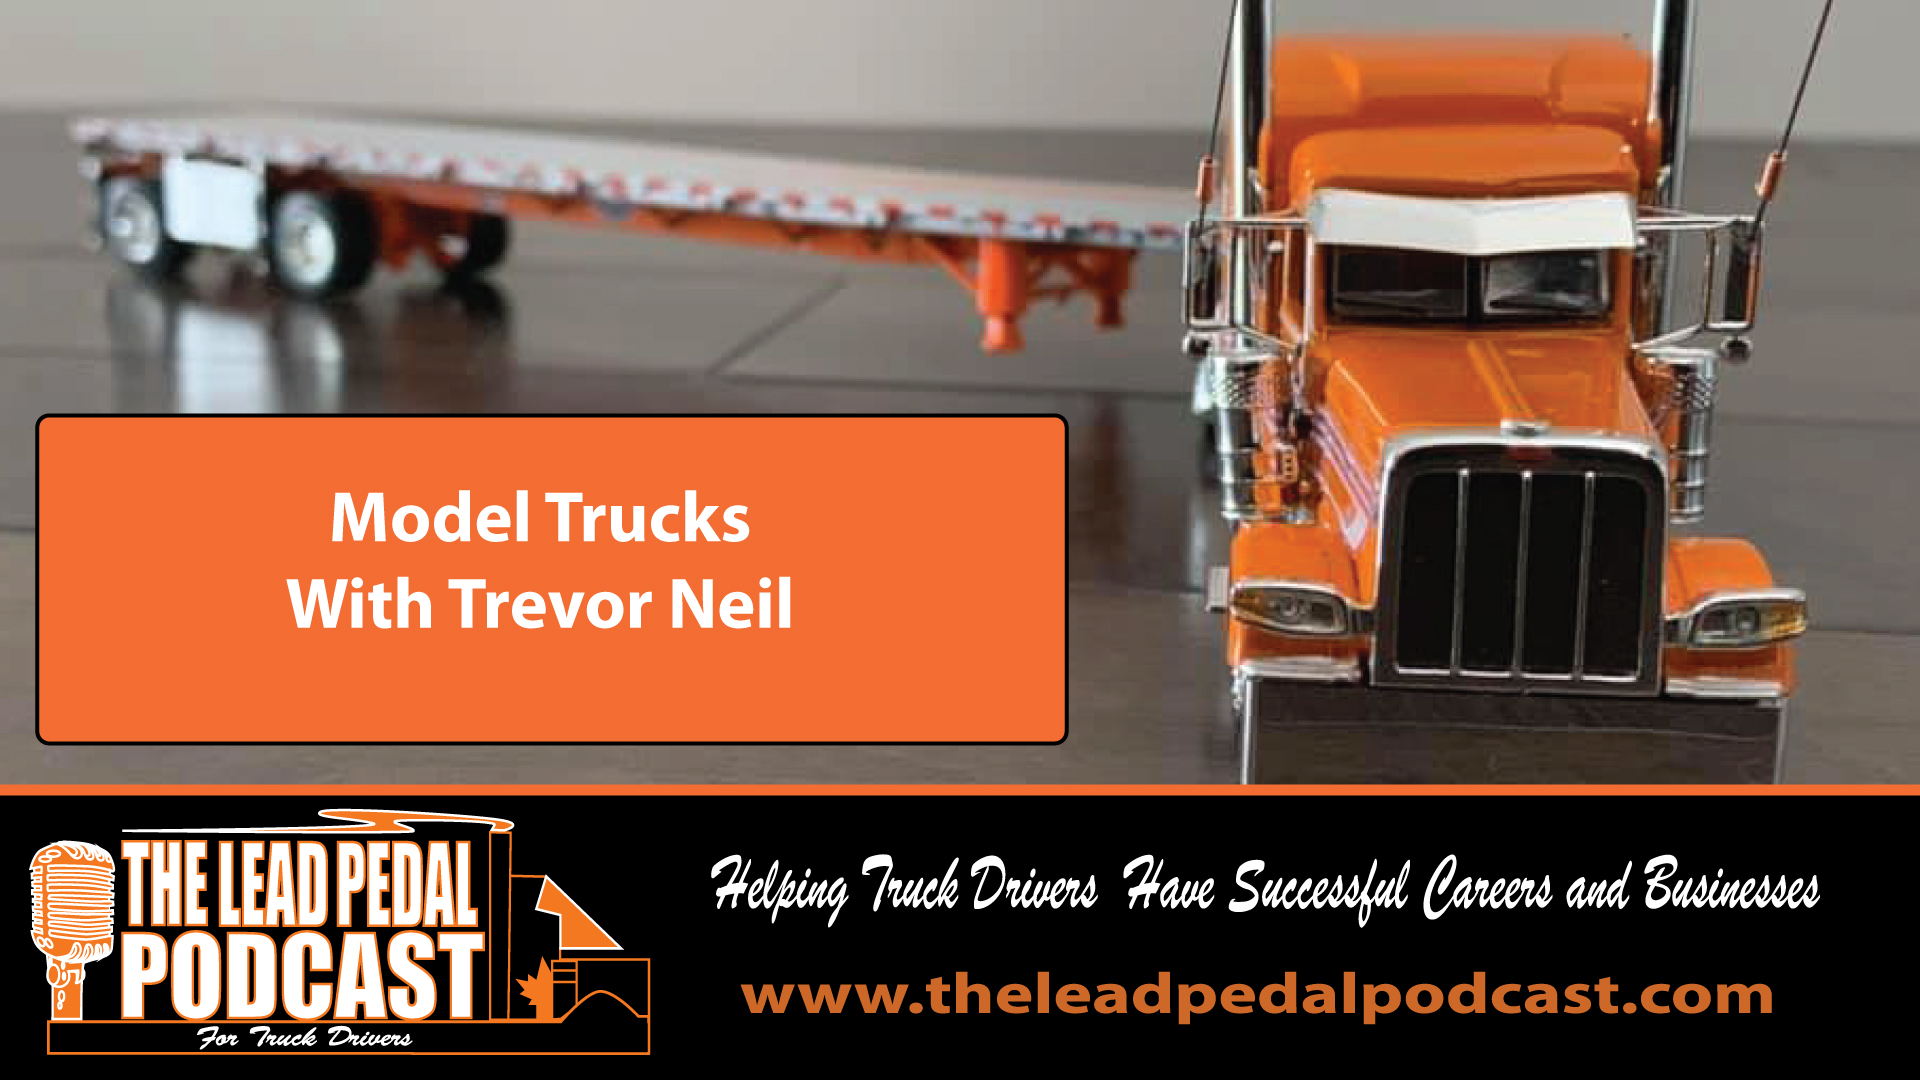 LP602 The Miniature World of Model Trucks with Trevor Neil